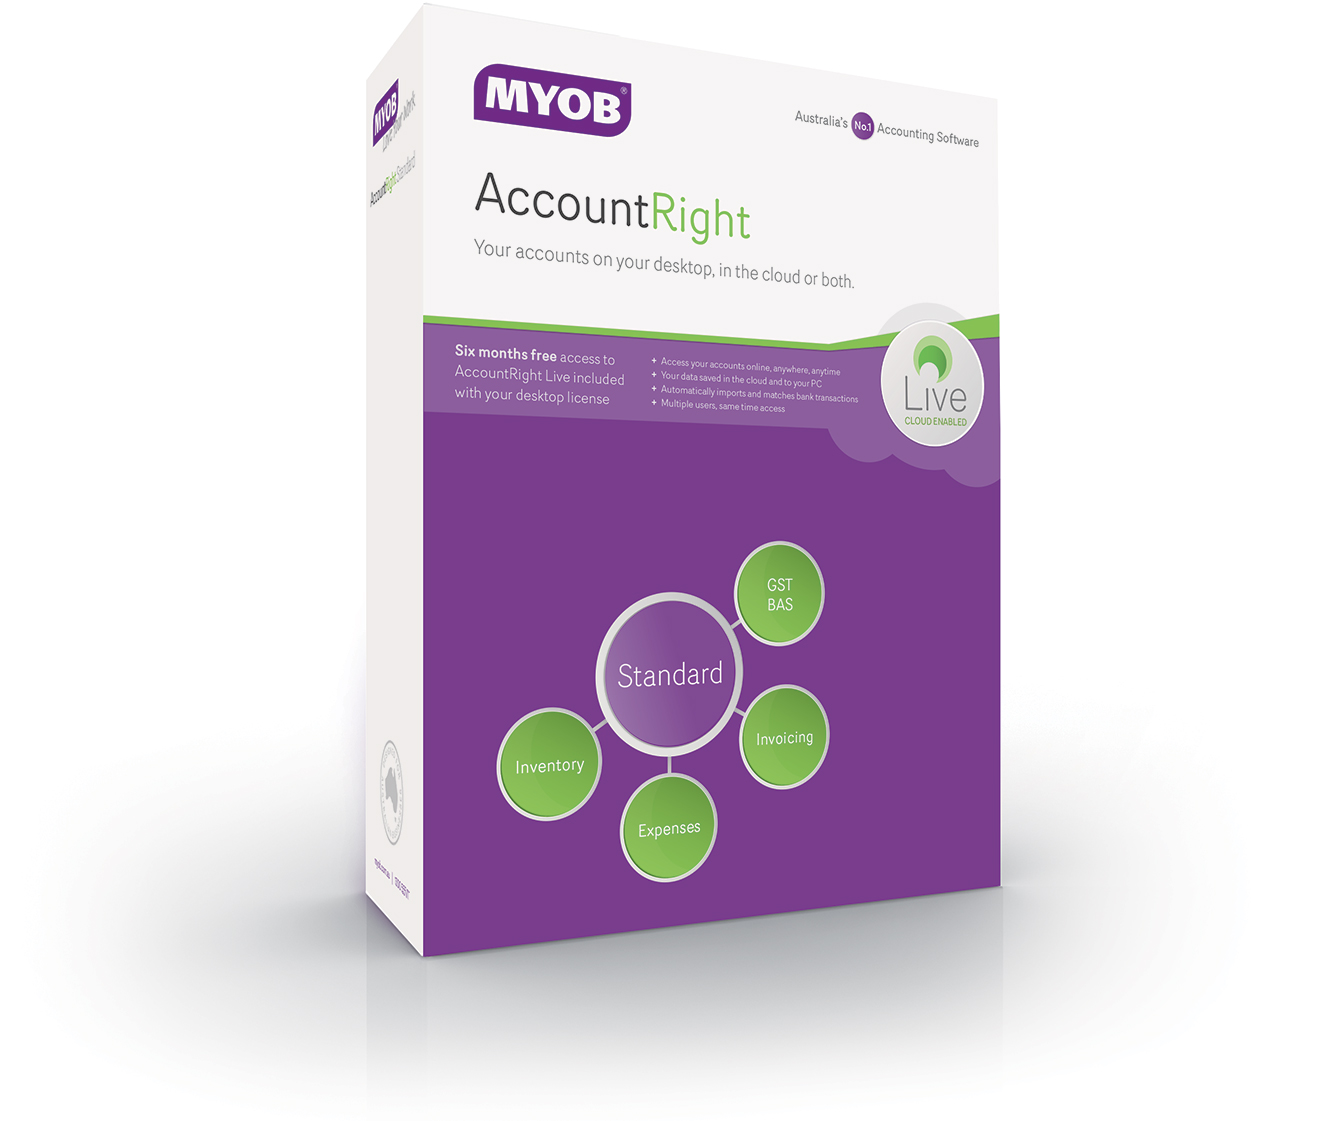 AccountRight-Standard-box-AU-Large